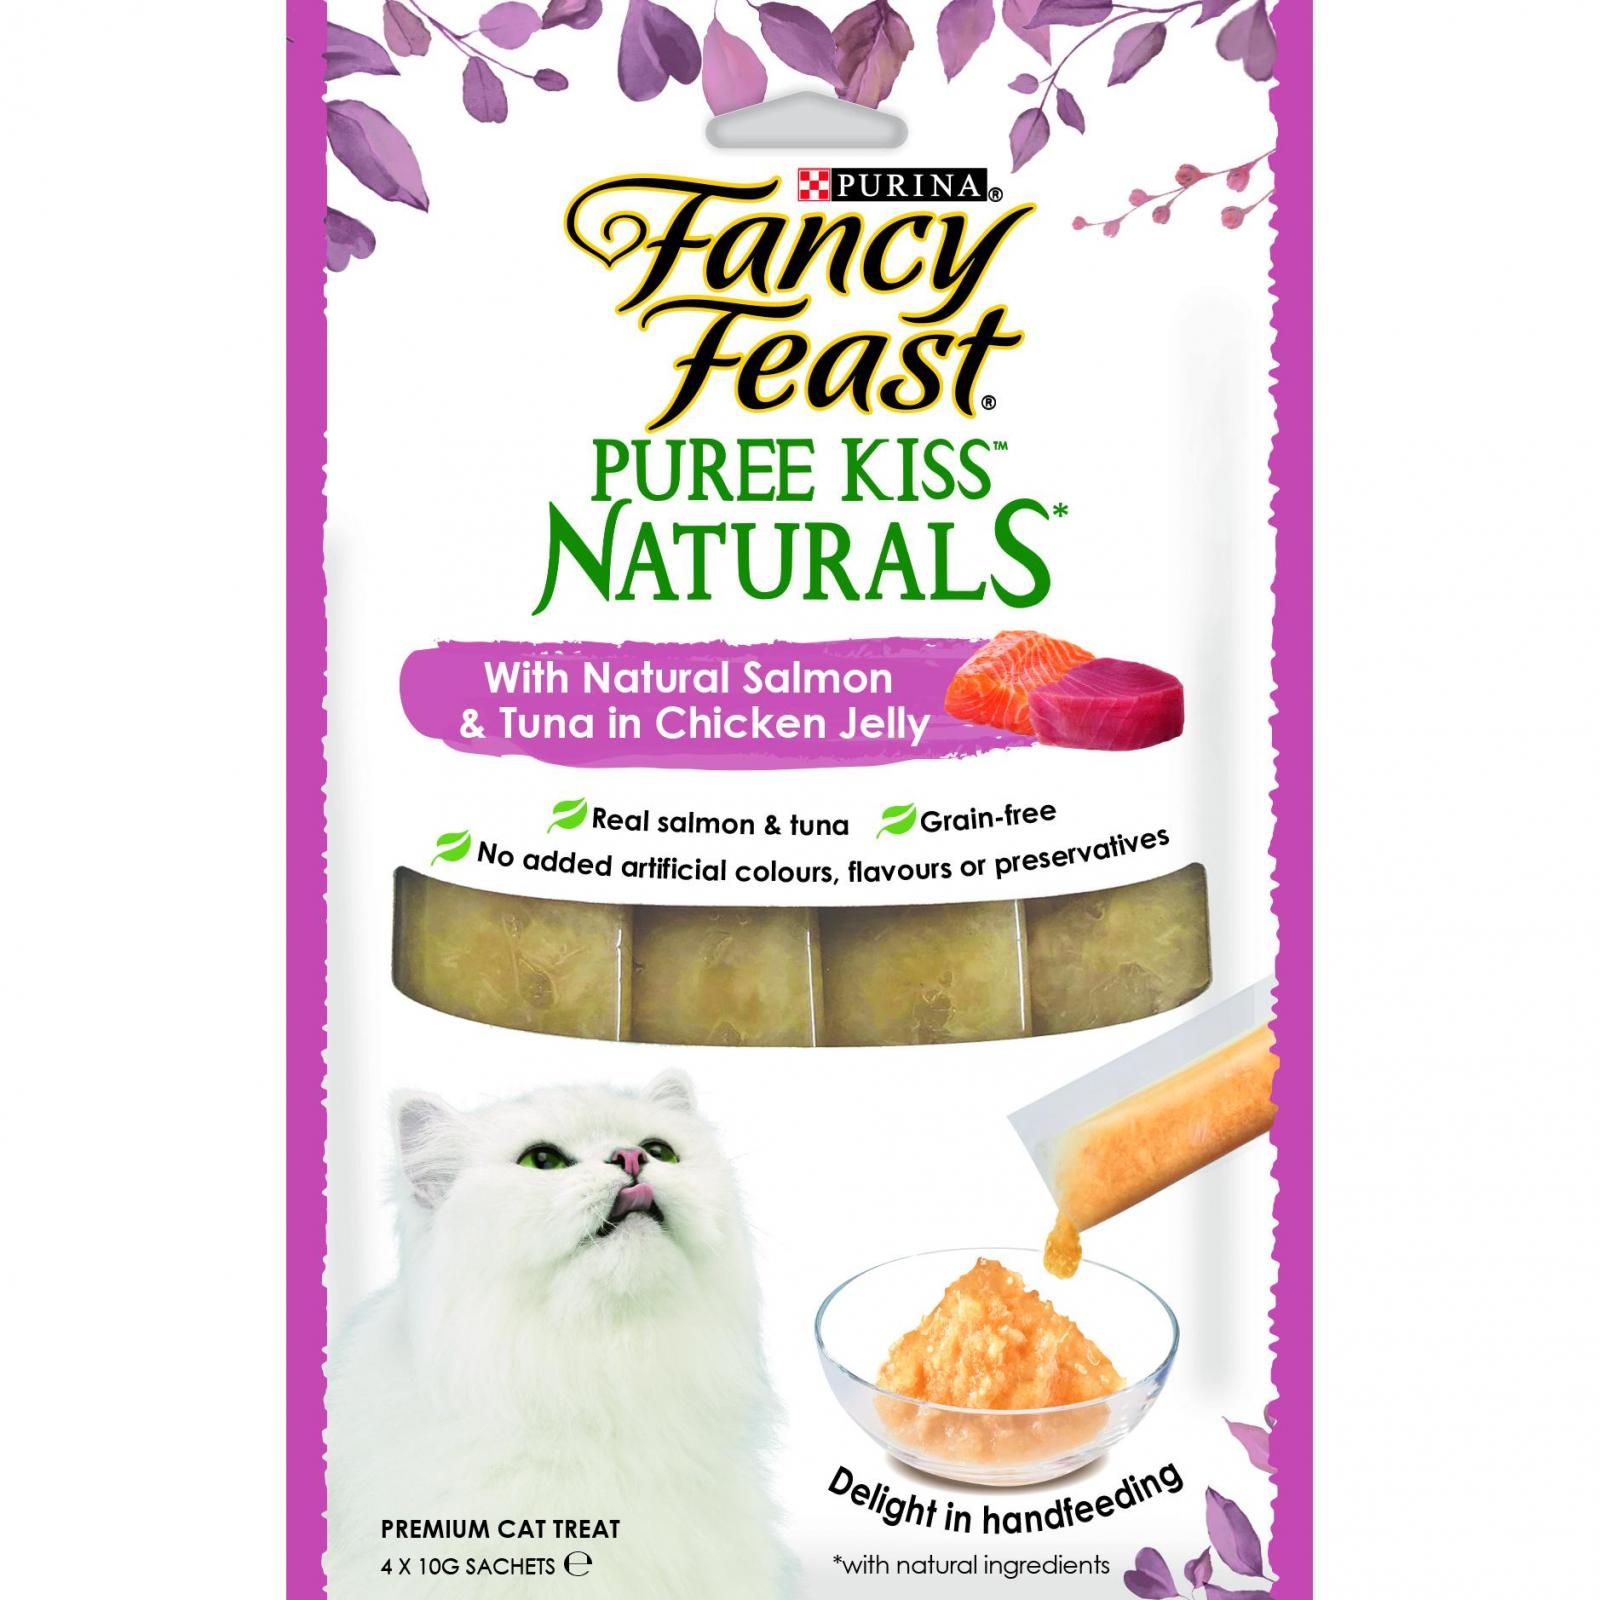 Fancy Feast Fancy Feast Puree Kiss Naturals Salmon and Tuna in Chicken Jelly 4x10g